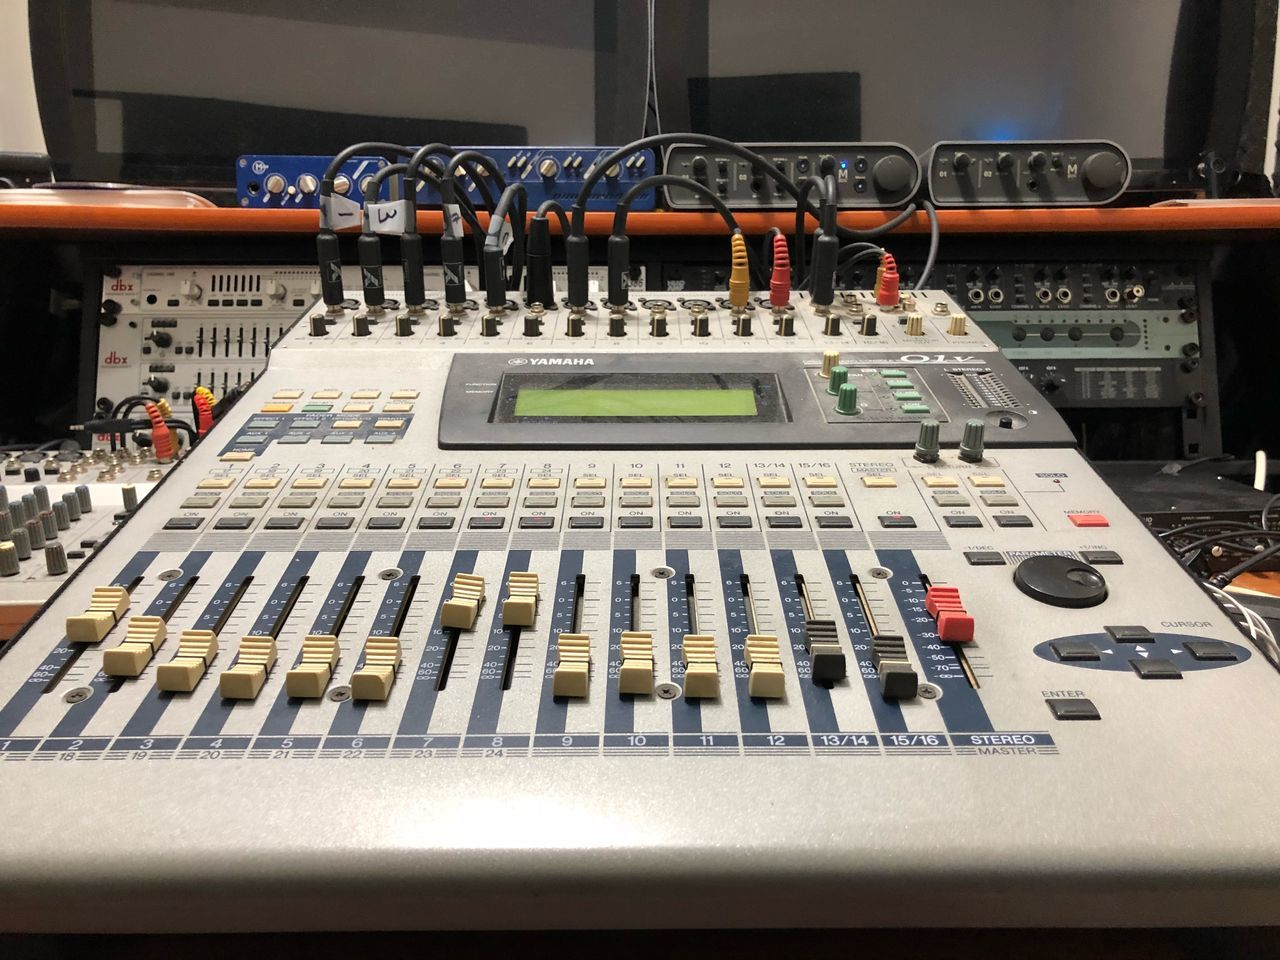 control, technology, music, sound recording equipment, sound mixer, indoors, arts culture and entertainment, audio equipment, equipment, close-up, recording studio, control panel, no people, musical instrument, studio, musical equipment, knob, industry, machinery, electronics industry, mixing, connection block